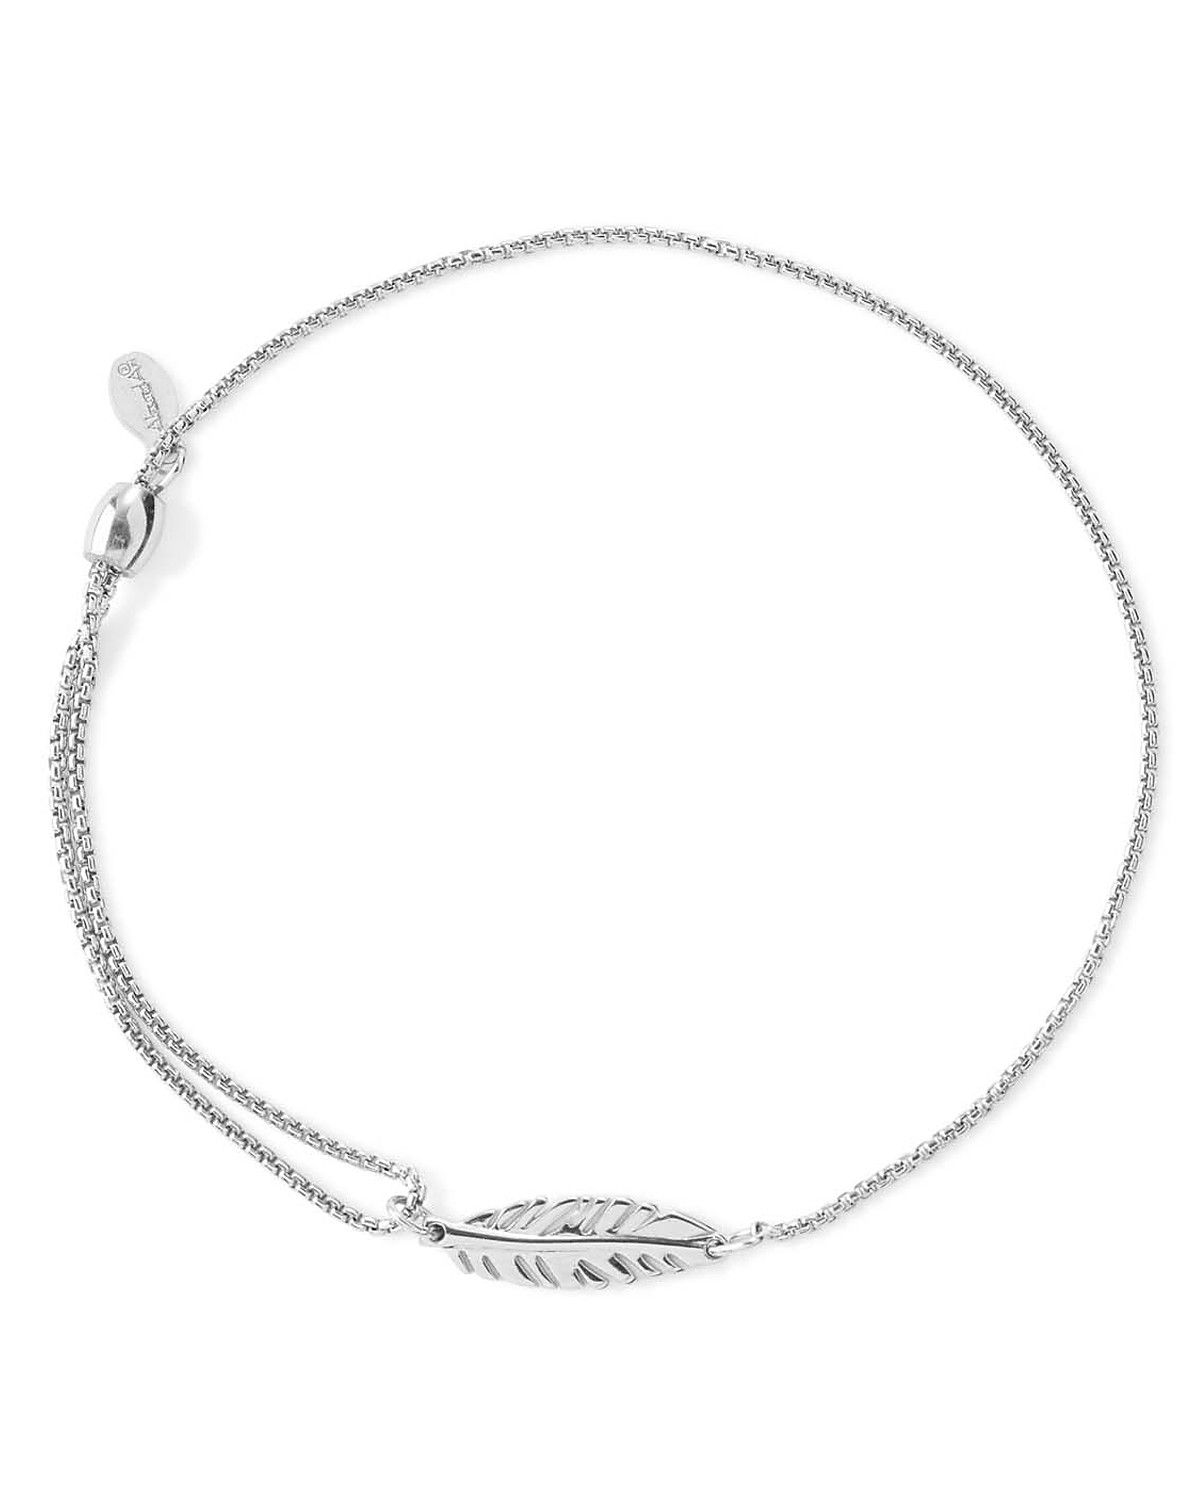 Alex And Ani Pull Chain Cross Bracelet Fascinating Alex And Ani Precious Metals Symbolic Feather Pull Chain Bracelet Review